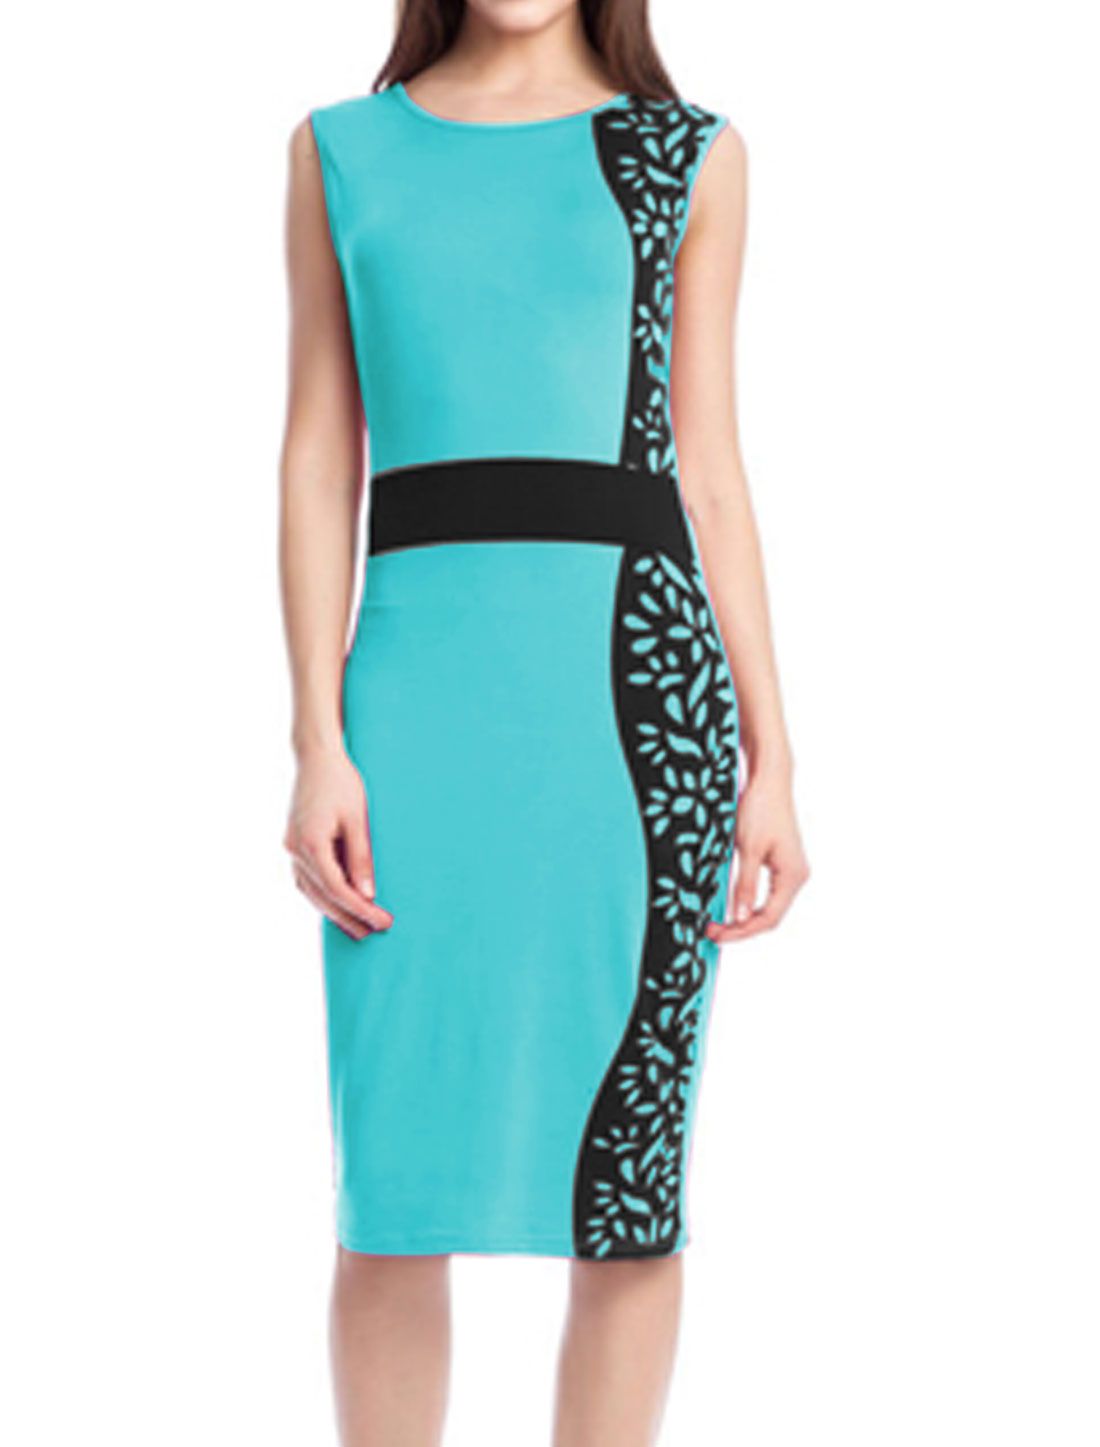 Women Sleeveless Contrast Color Novelty Pencil Dress Blue L